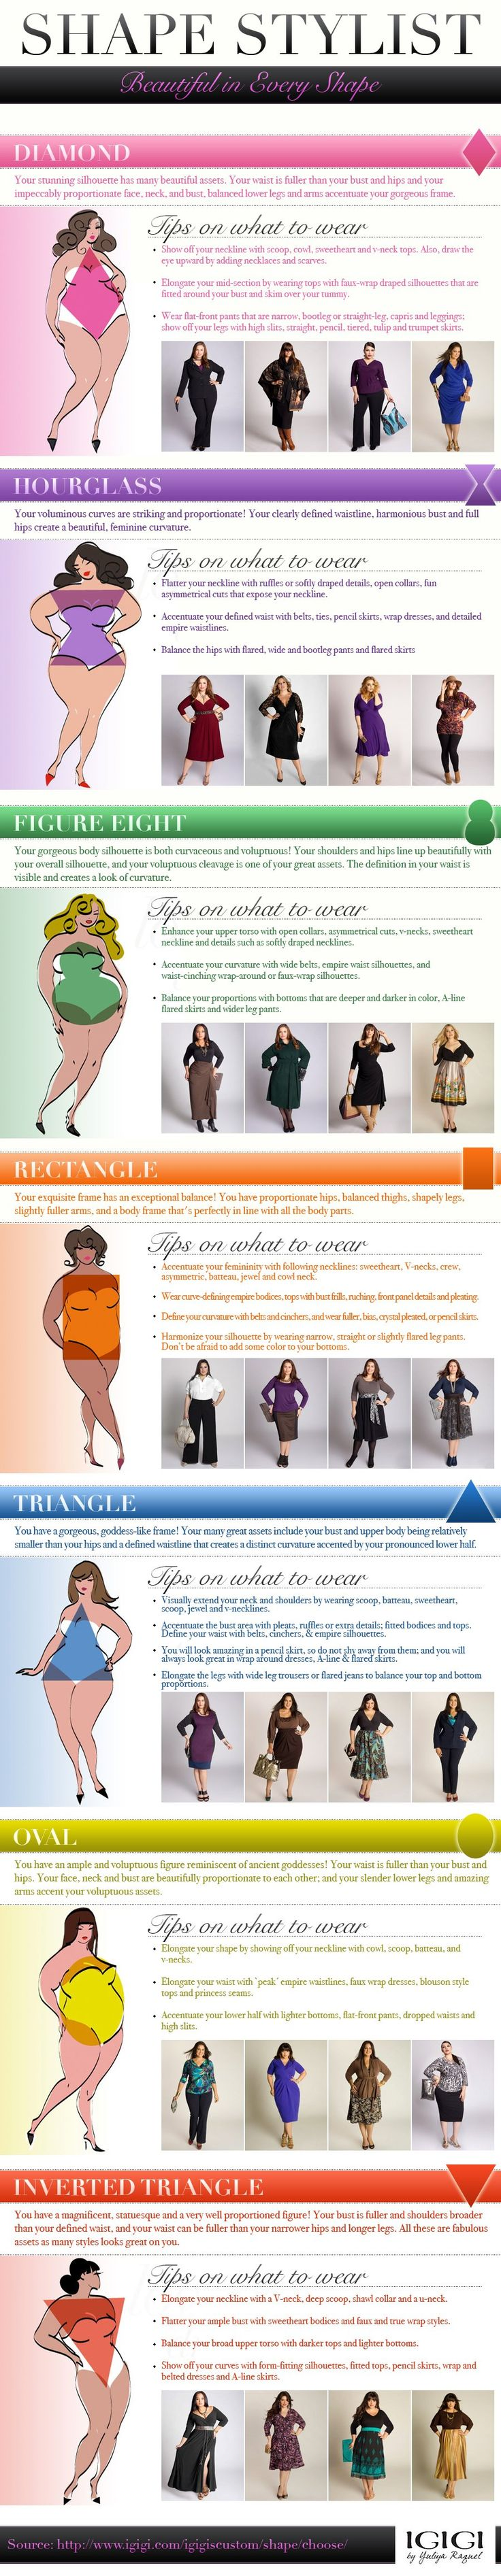 body size and shape Apple body shape traits: hips and shoulders have the same width waistline has the same width or is wider you gain weight mainly around the waist, at least in proportion to the other parts of.